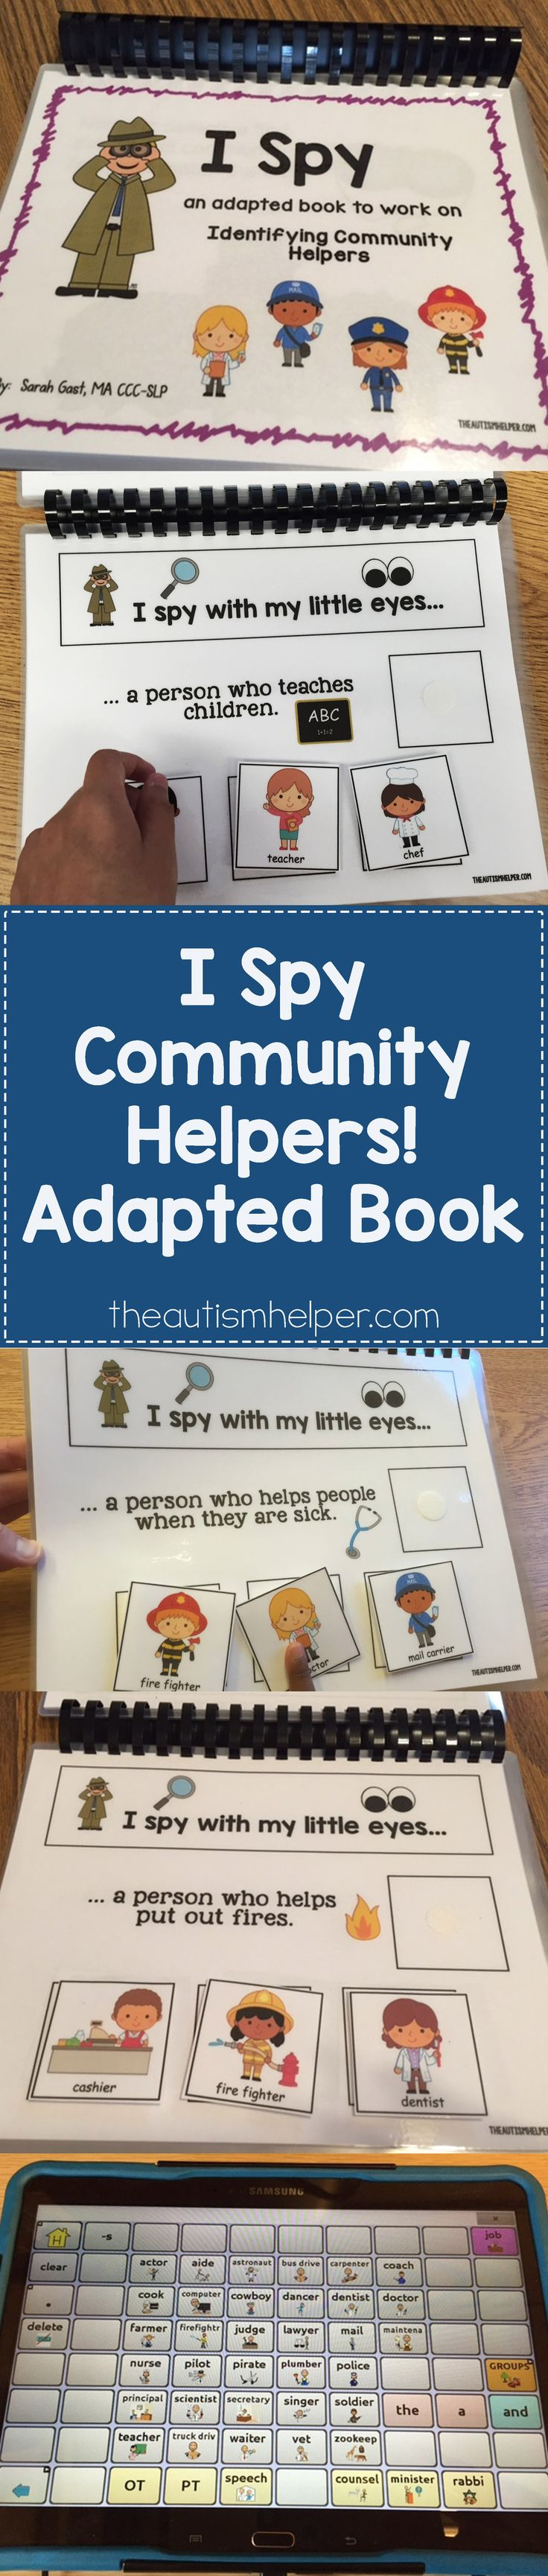 get 20 community helpers ideas on pinterest without signing up